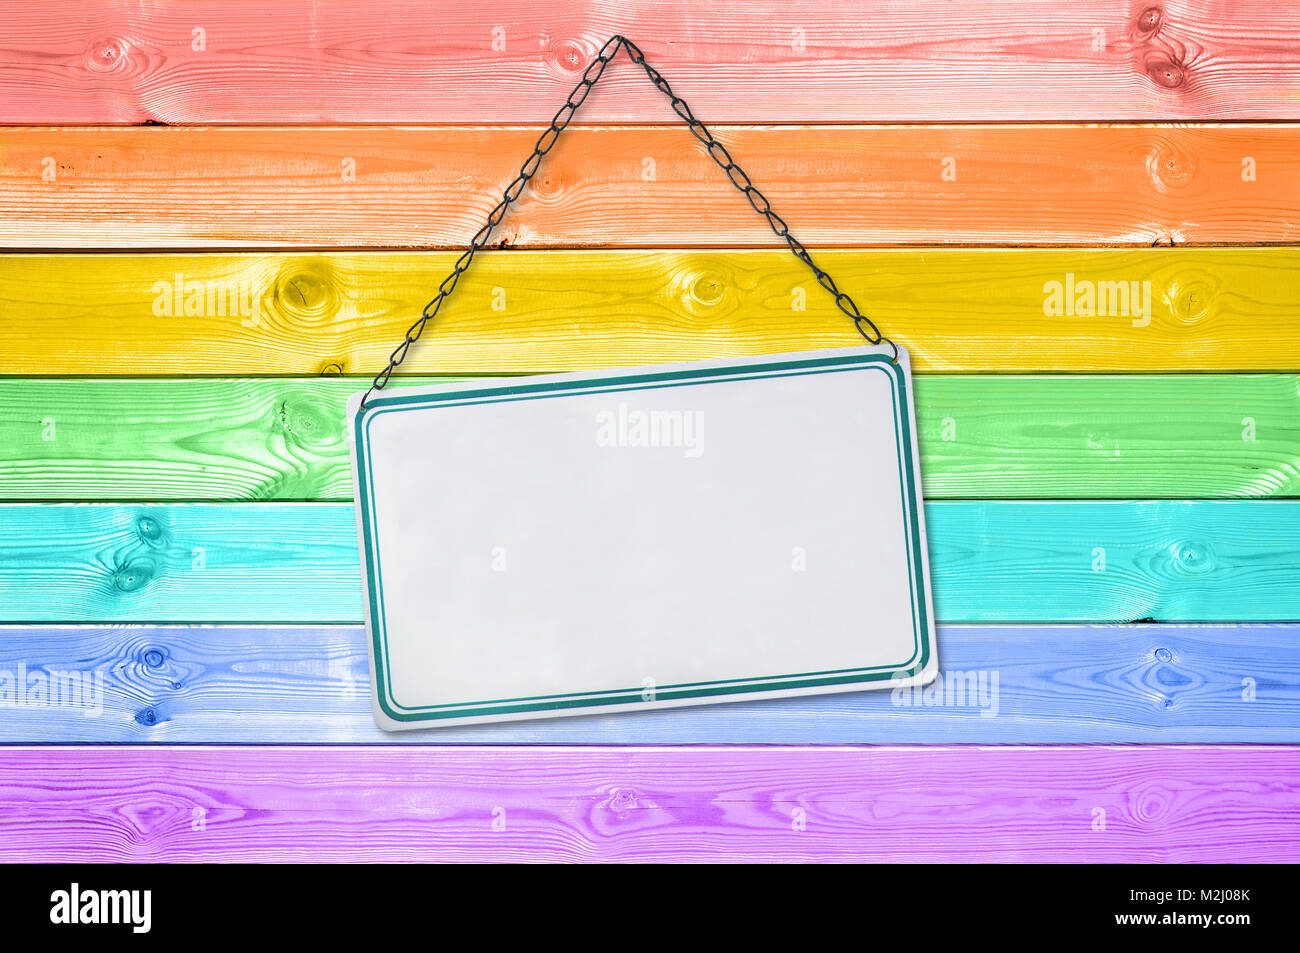 Metal plate sign hanging on a pastel colorful rainbow painted wood planks background - Stock Image